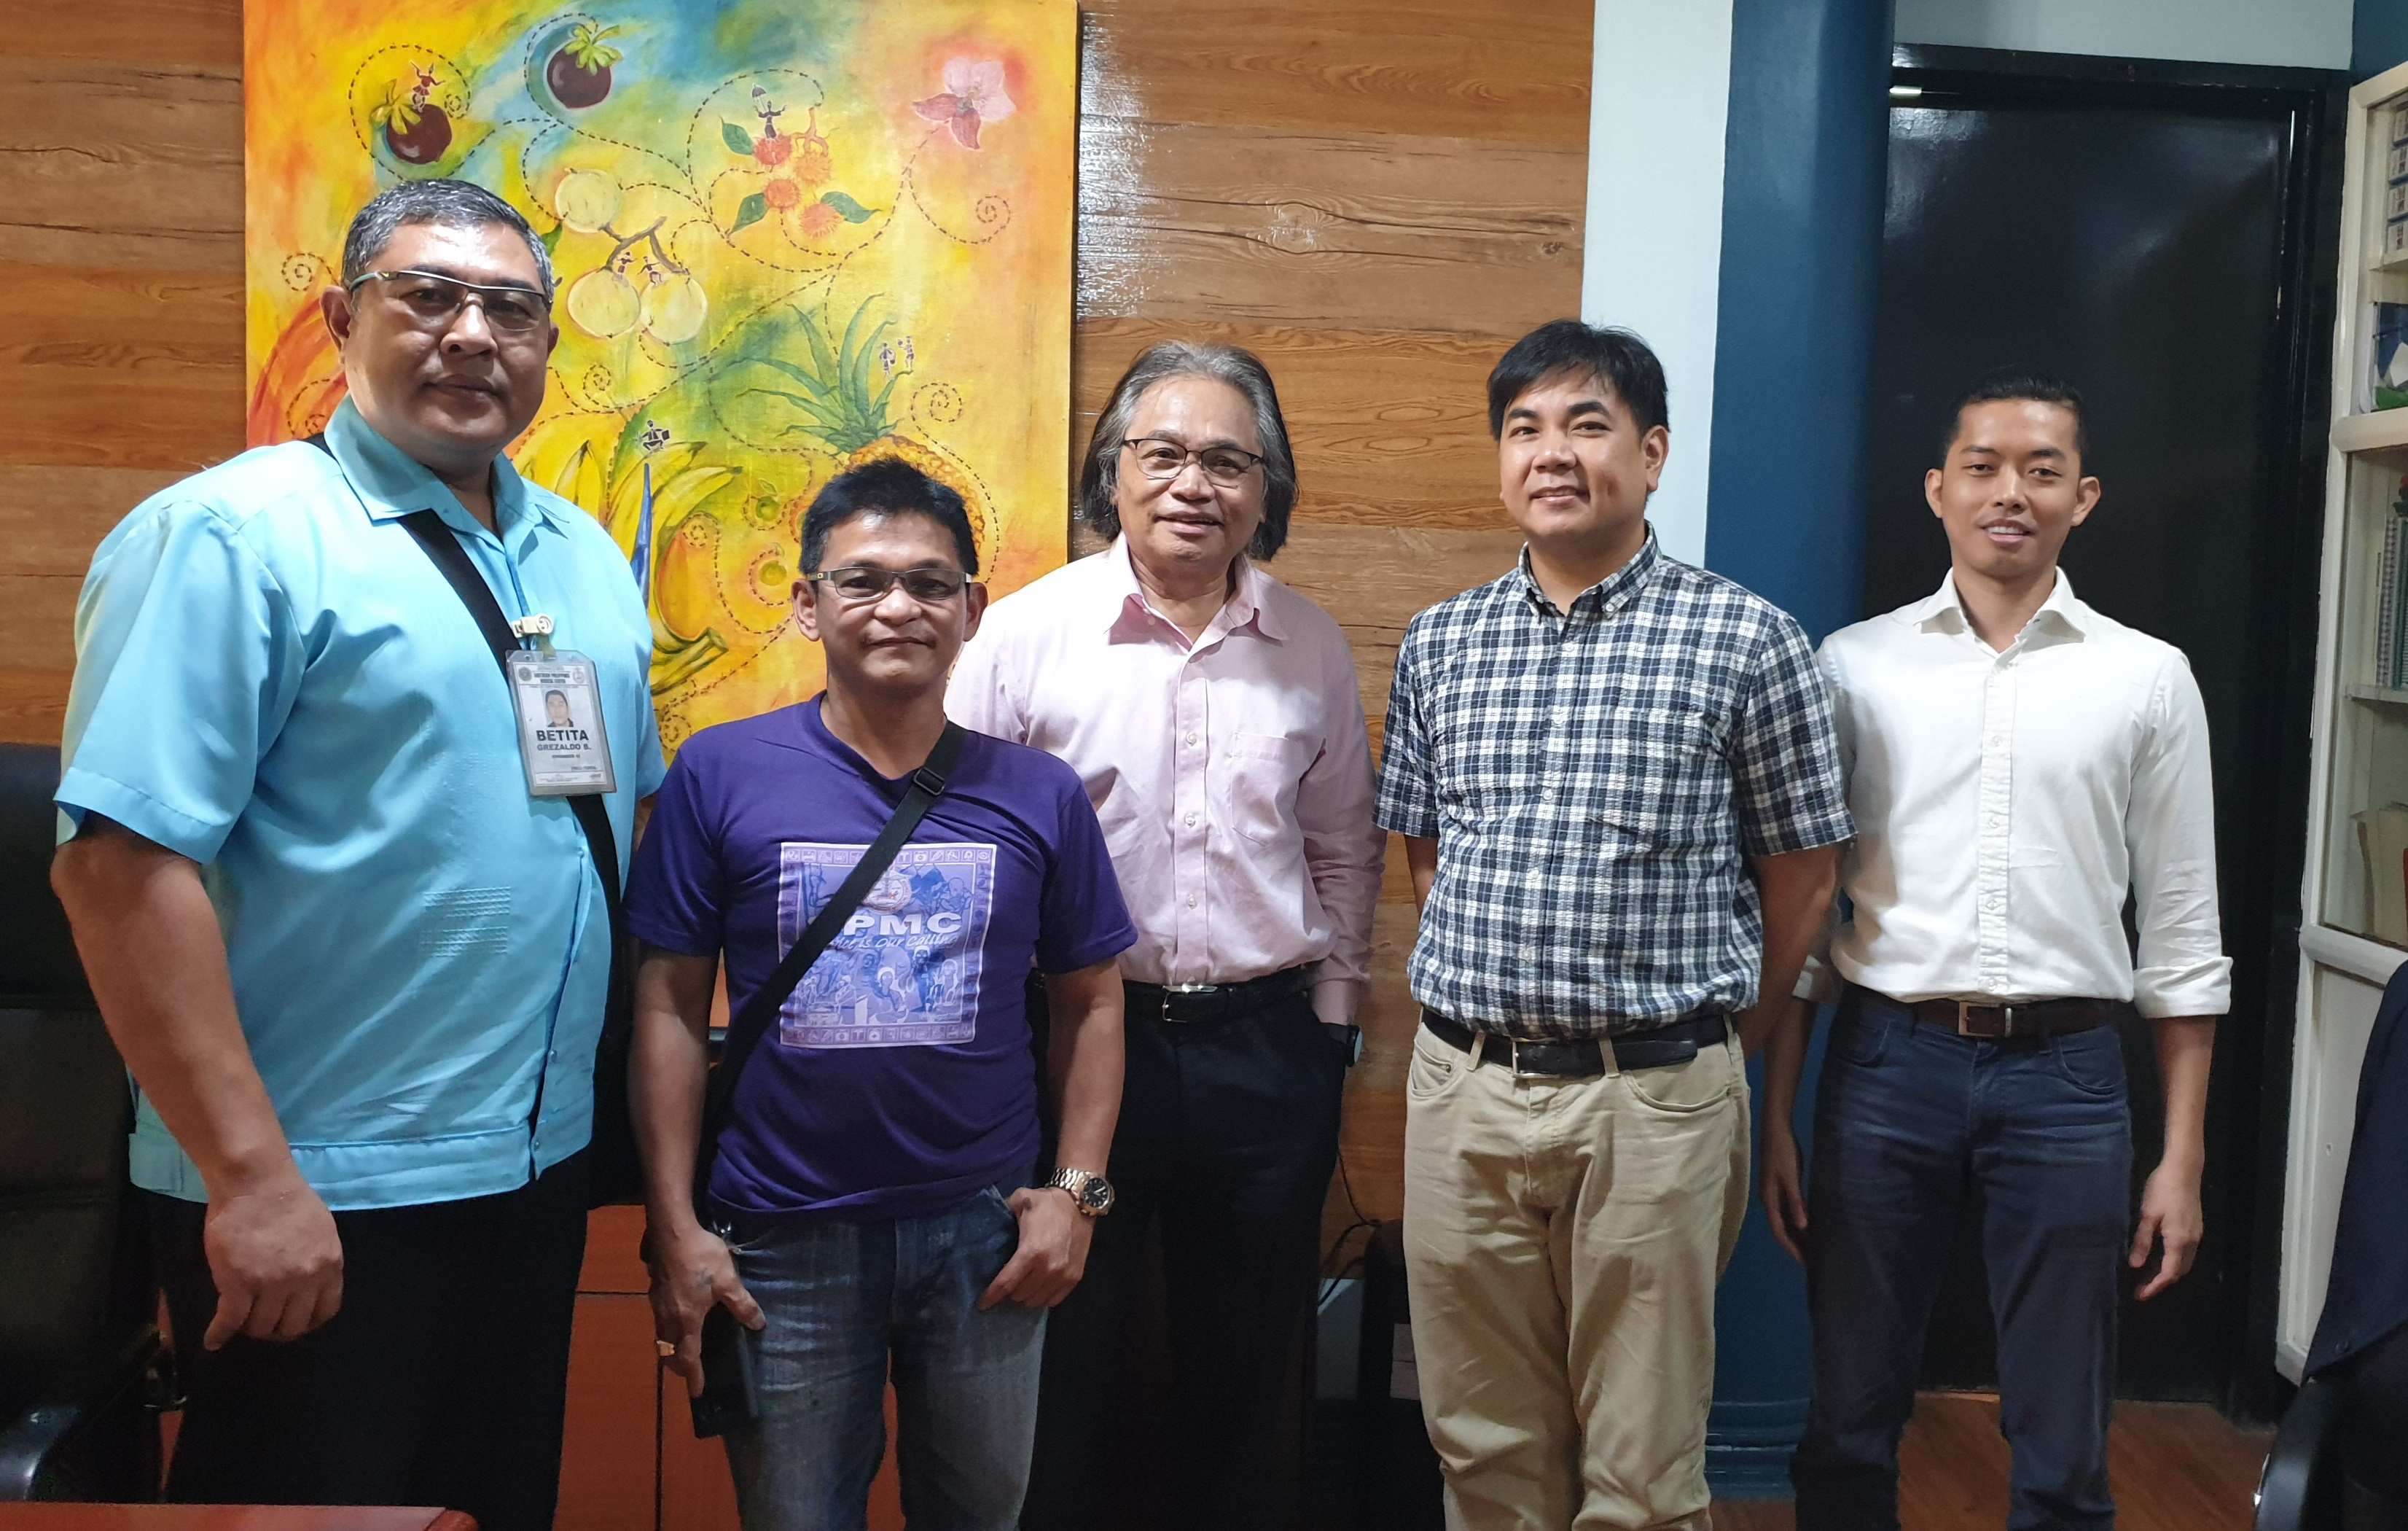 OceanPixel made a visit to Southern Philippines Medical Center (SPMC)